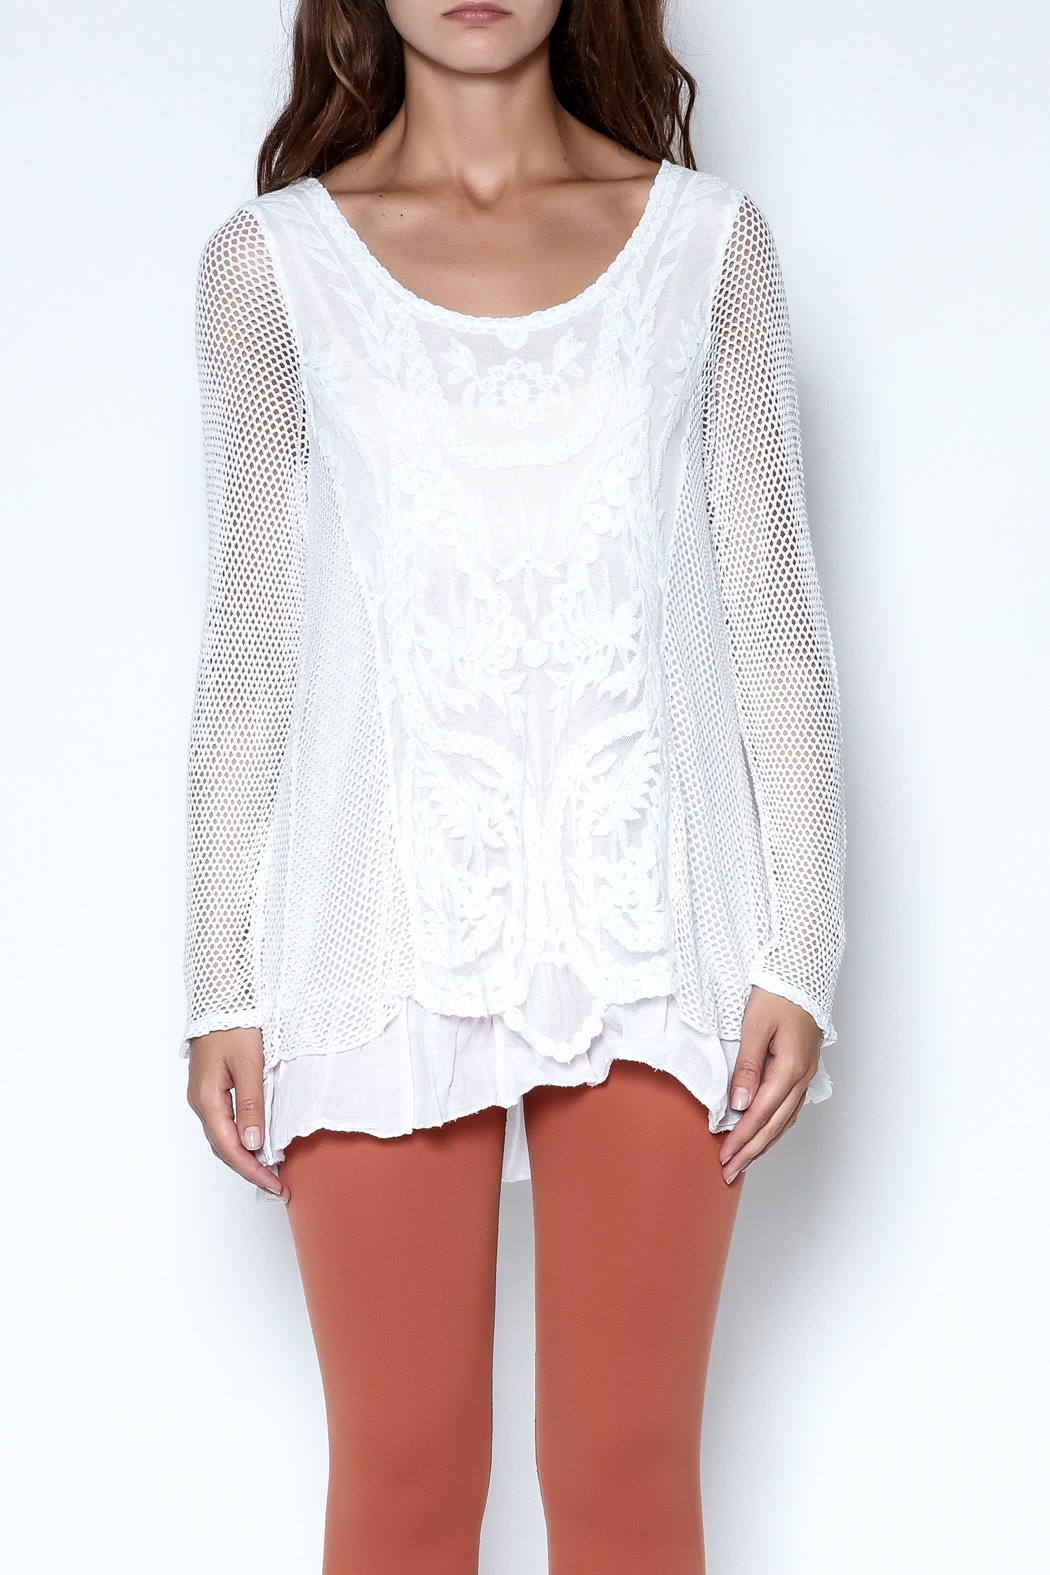 Catherine Lillywhite Knit Lace Top - Front Cropped Image